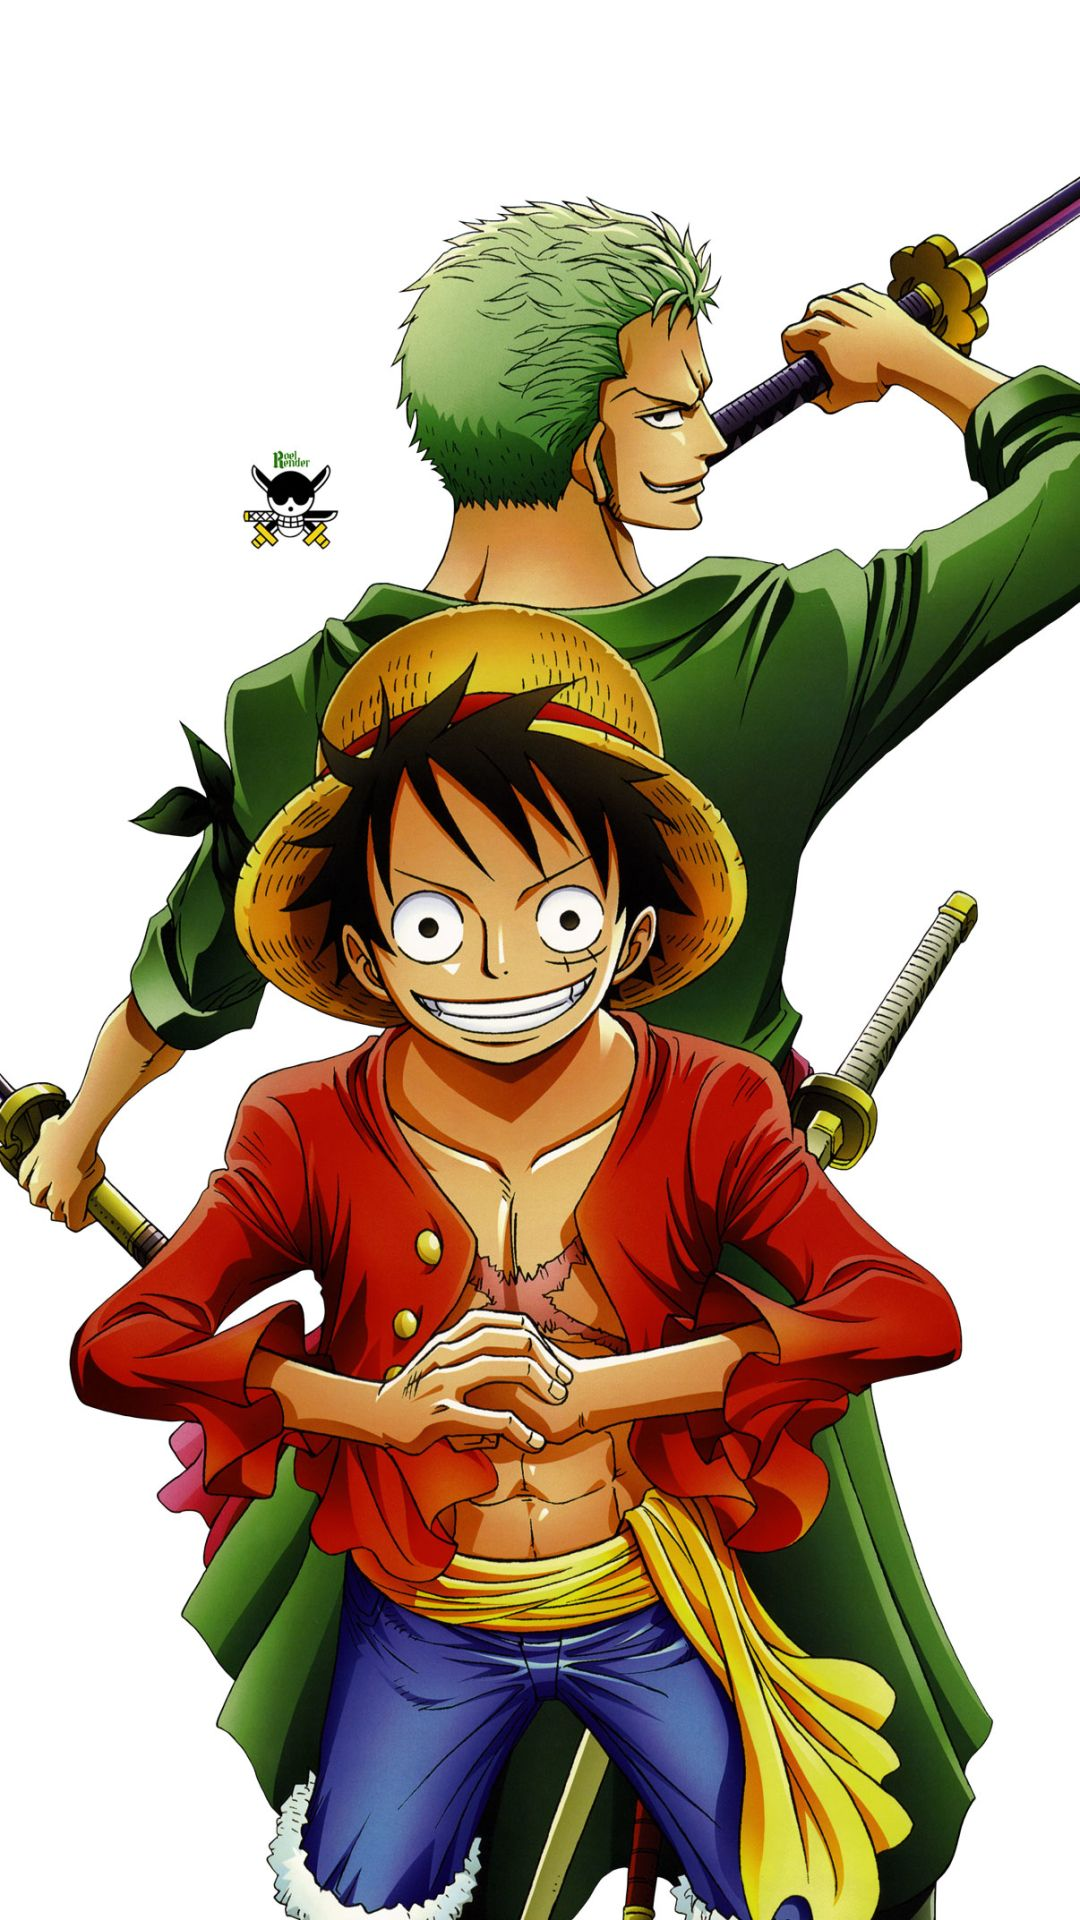 Luffy One Piece Image Is Best Wallpaper On Flowerswallpaper Info If You Like It Iphone A In 2020 Anime Wallpaper Iphone One Piece Wallpaper Iphone One Piece Images